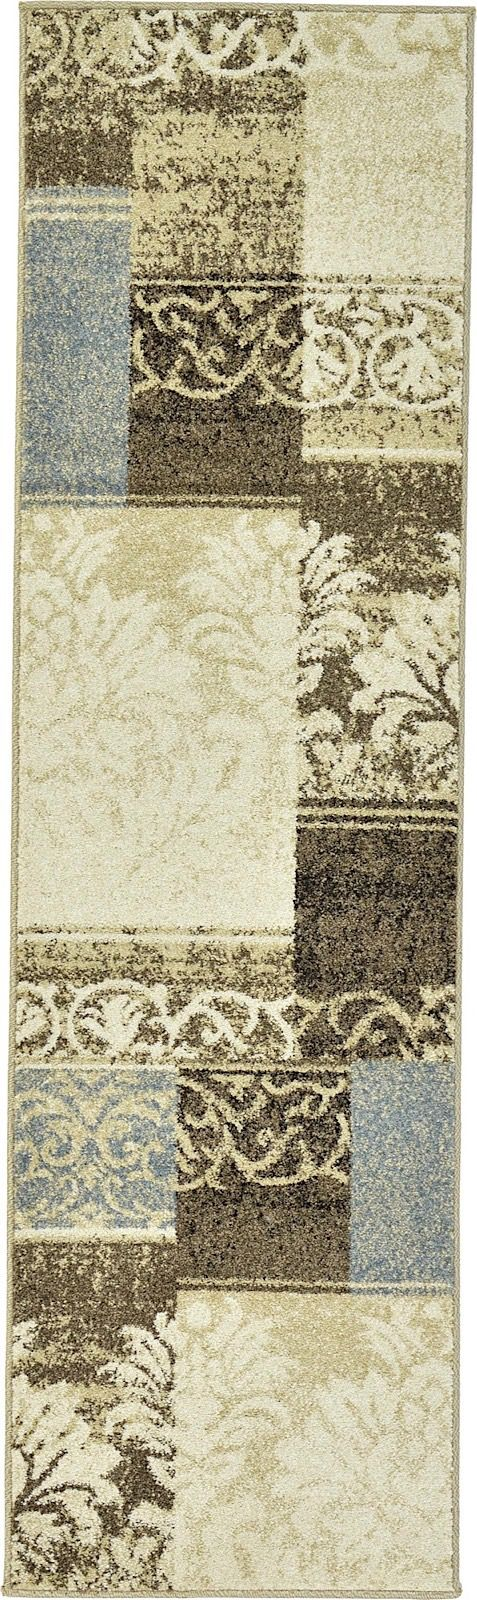 rugpal pastiche contemporary area rug collection